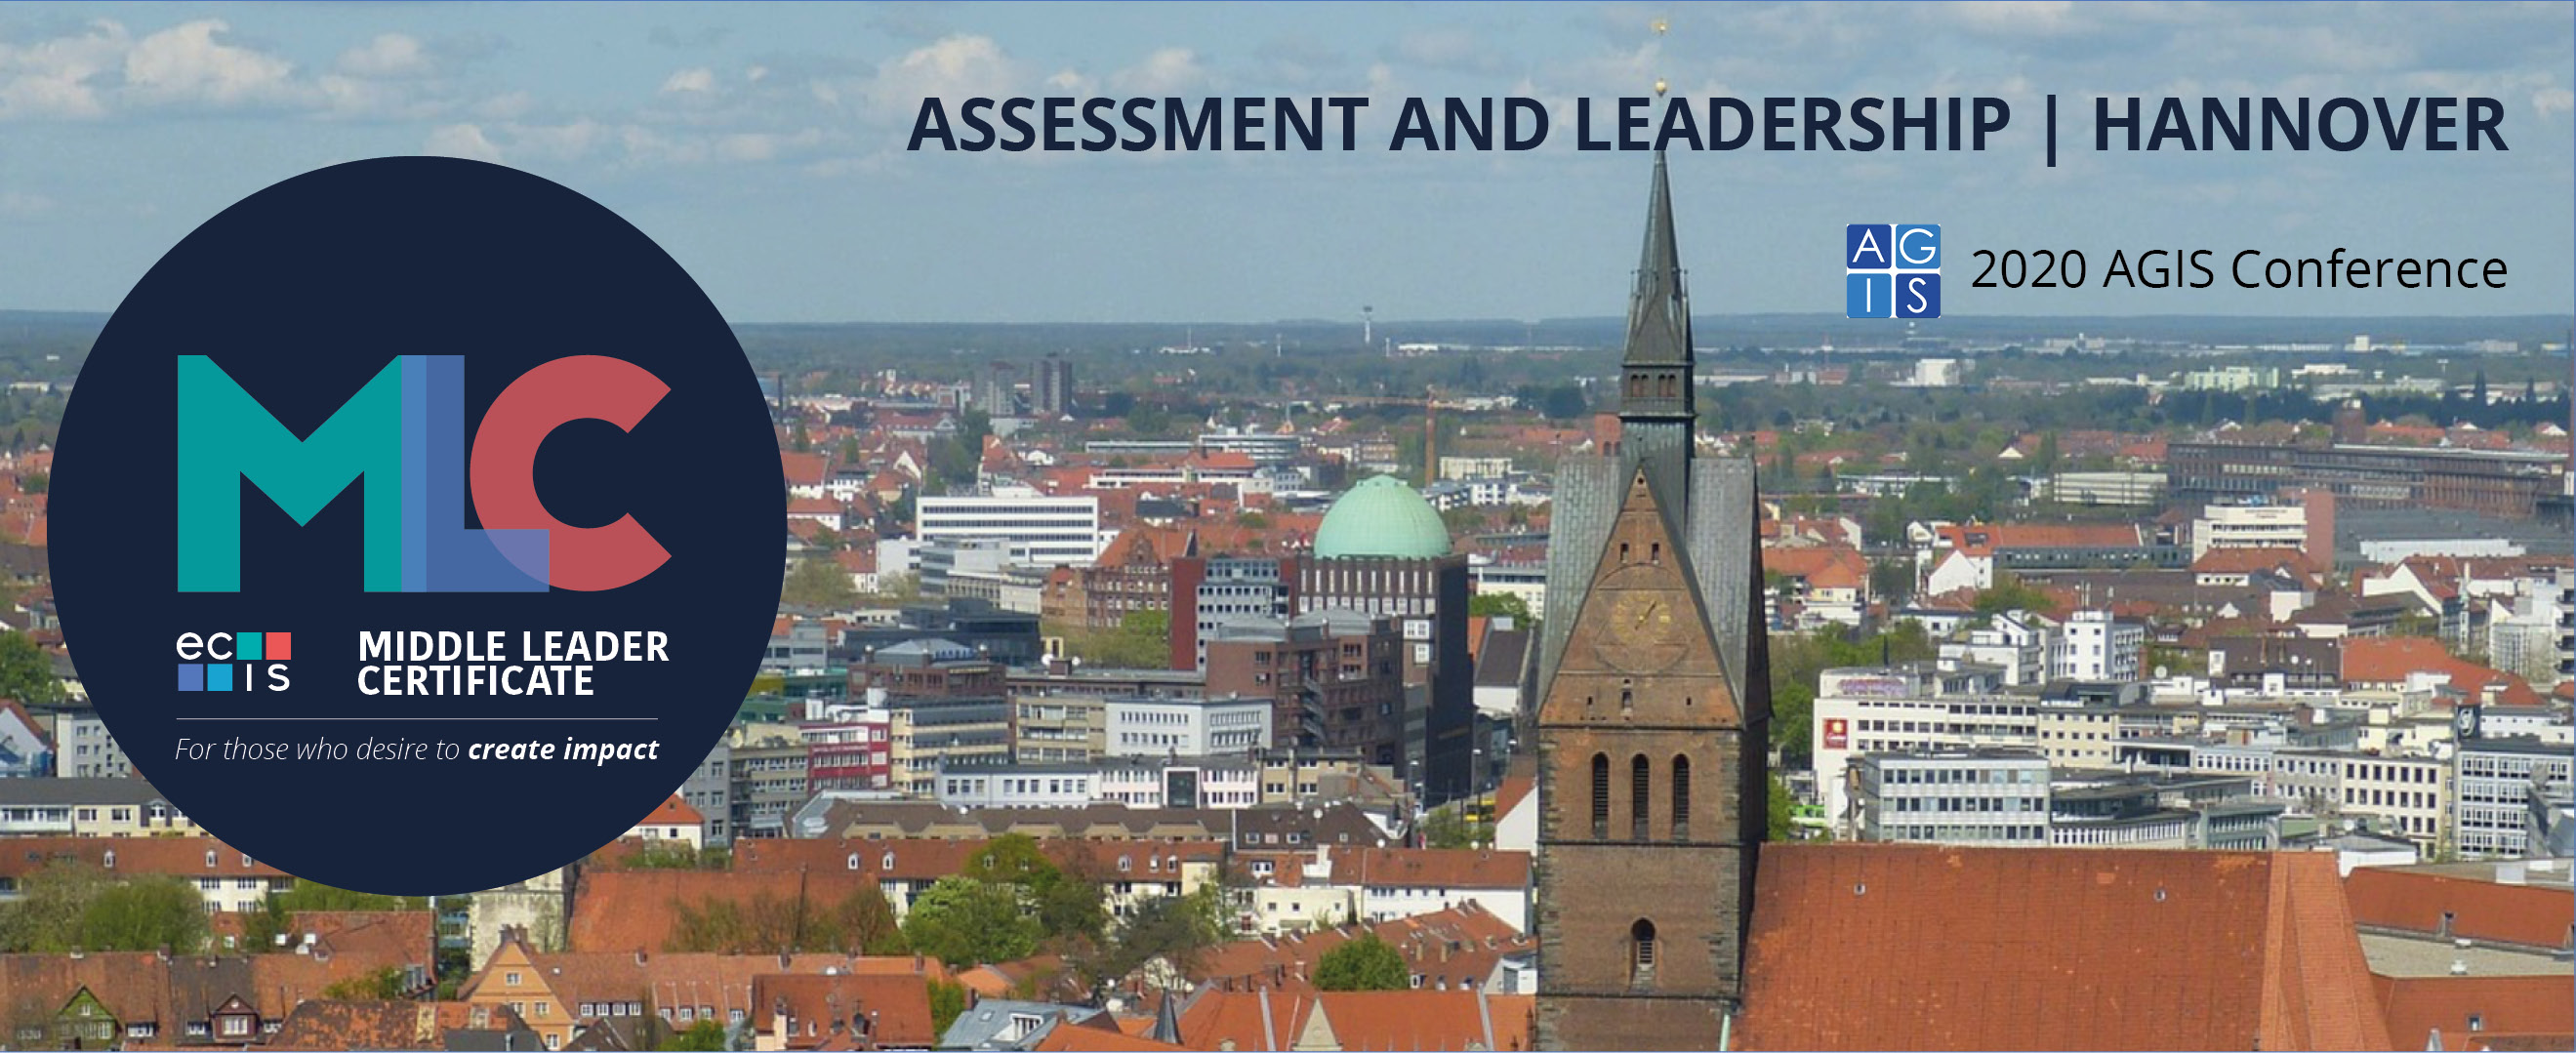 MLC - Assessment and Leadership - AGIS Conference 23 + 24 Jan